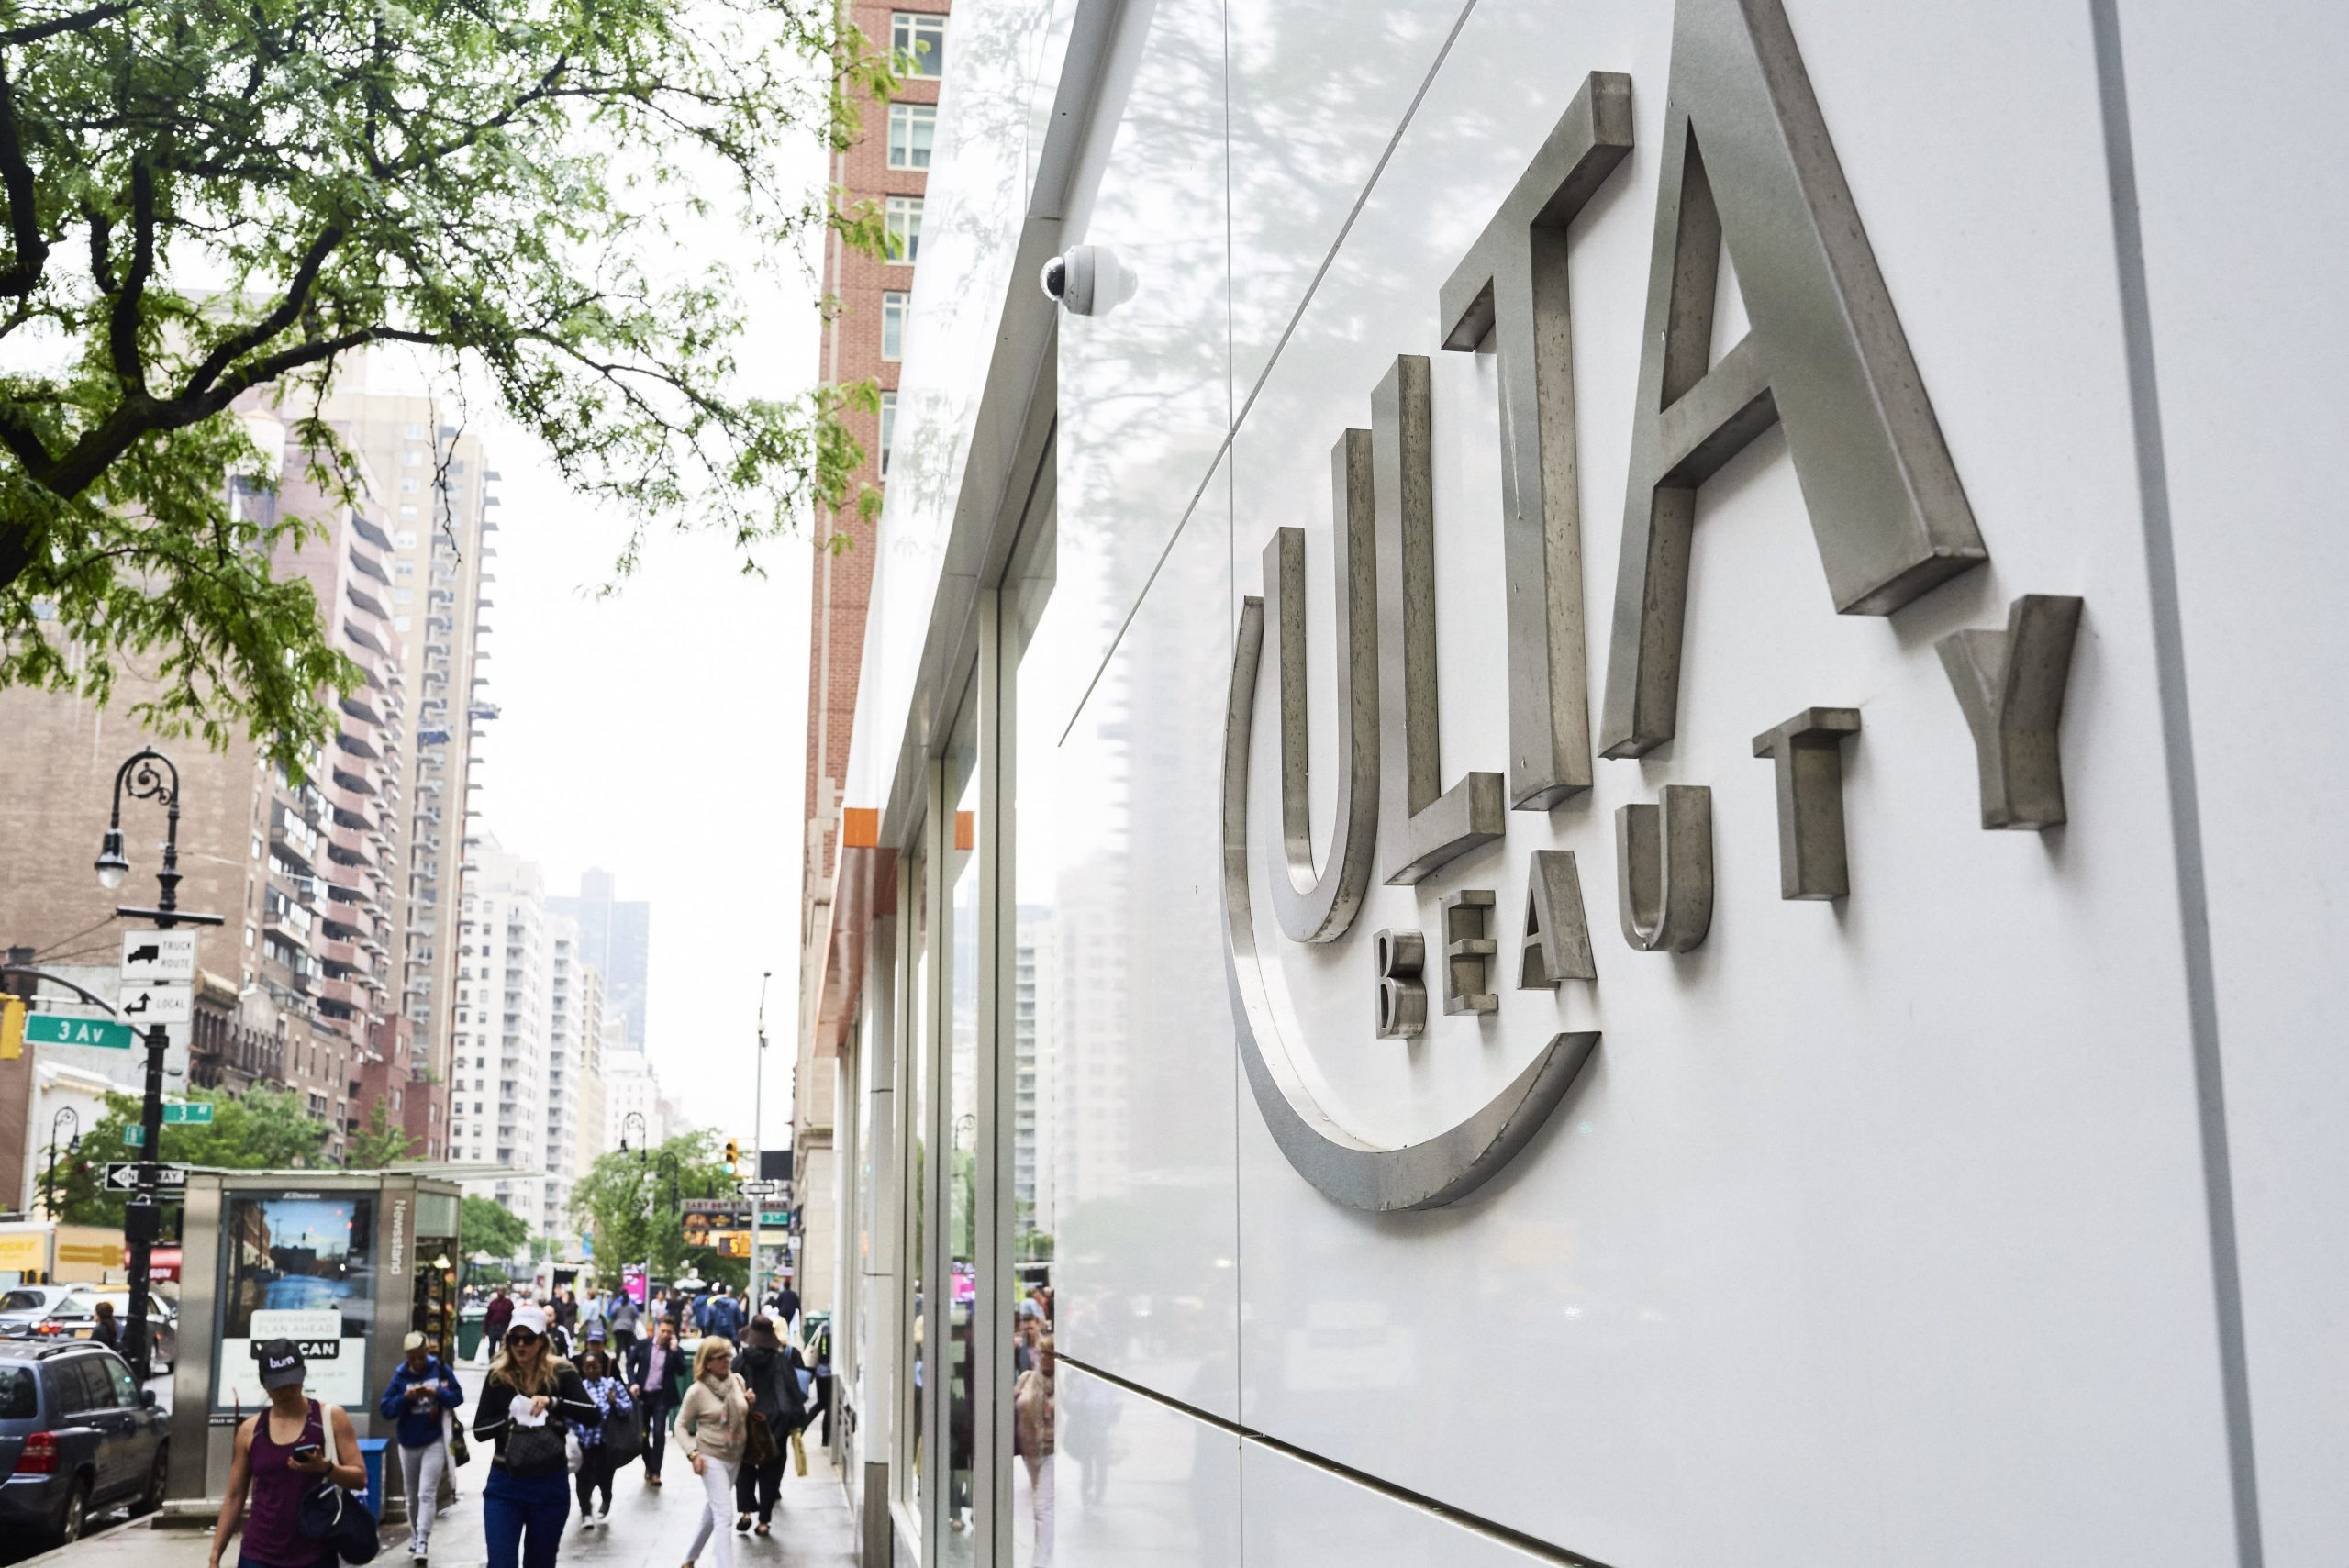 How department stores lost their clout in the beauty industry to Ulta, e-commerce and influencers